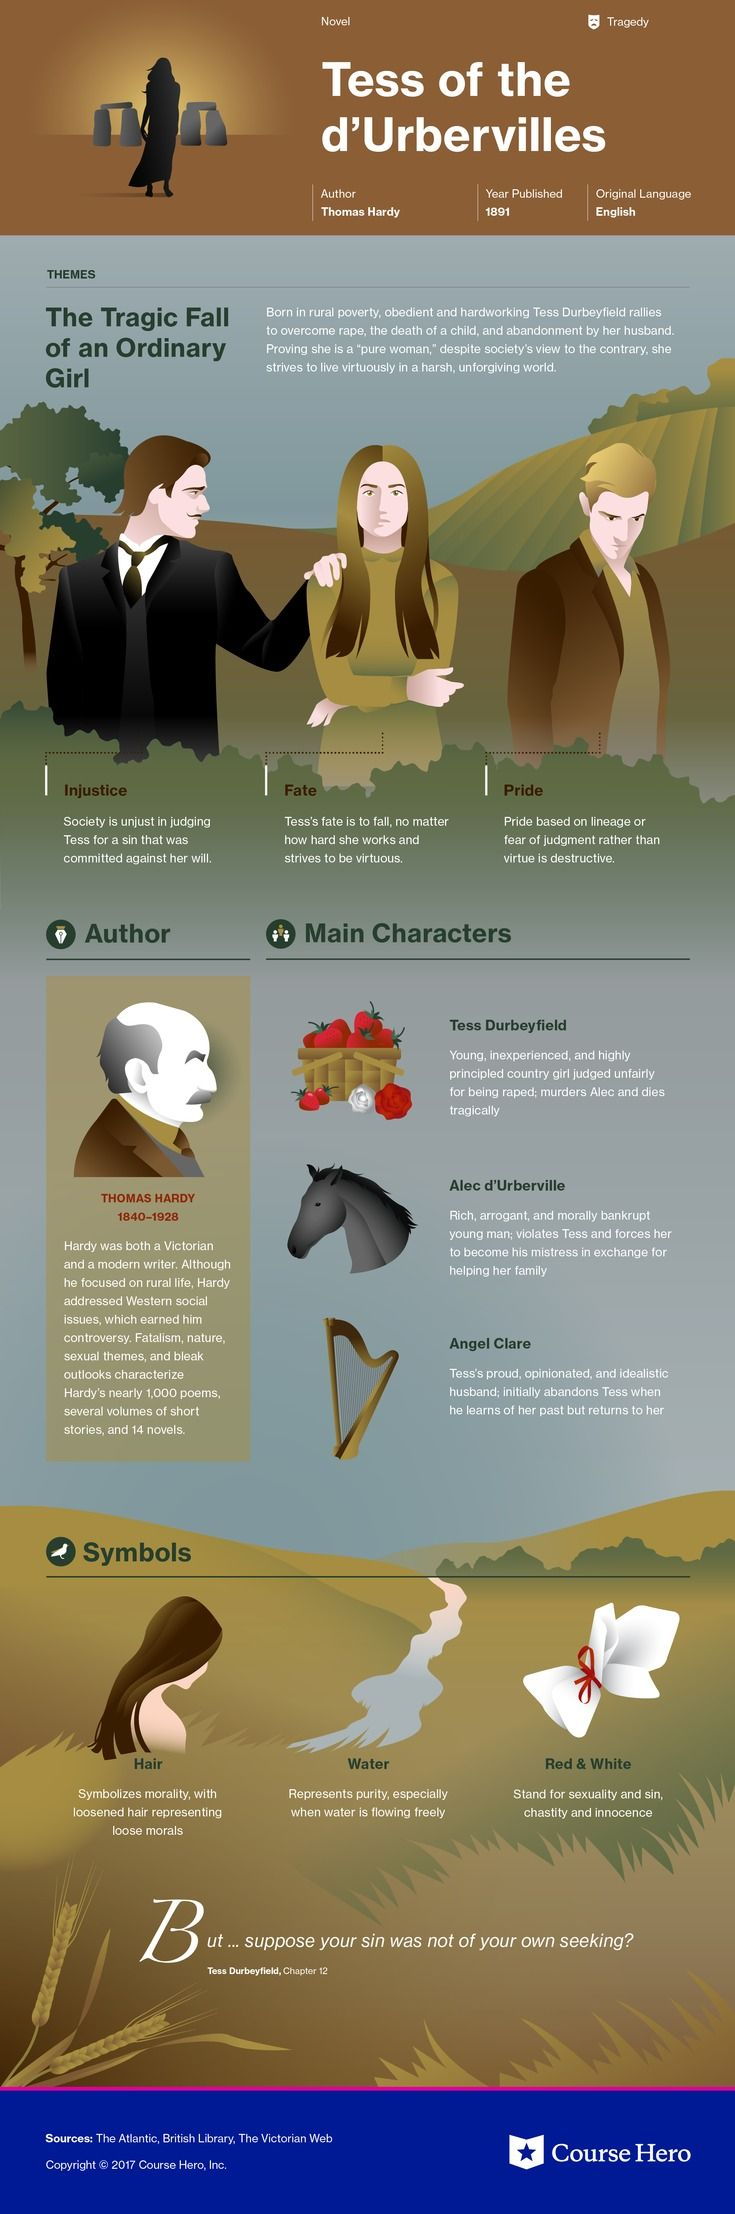 This @CourseHero infographic on Tess of the d'Urbervilles is both visually stunning and informative!